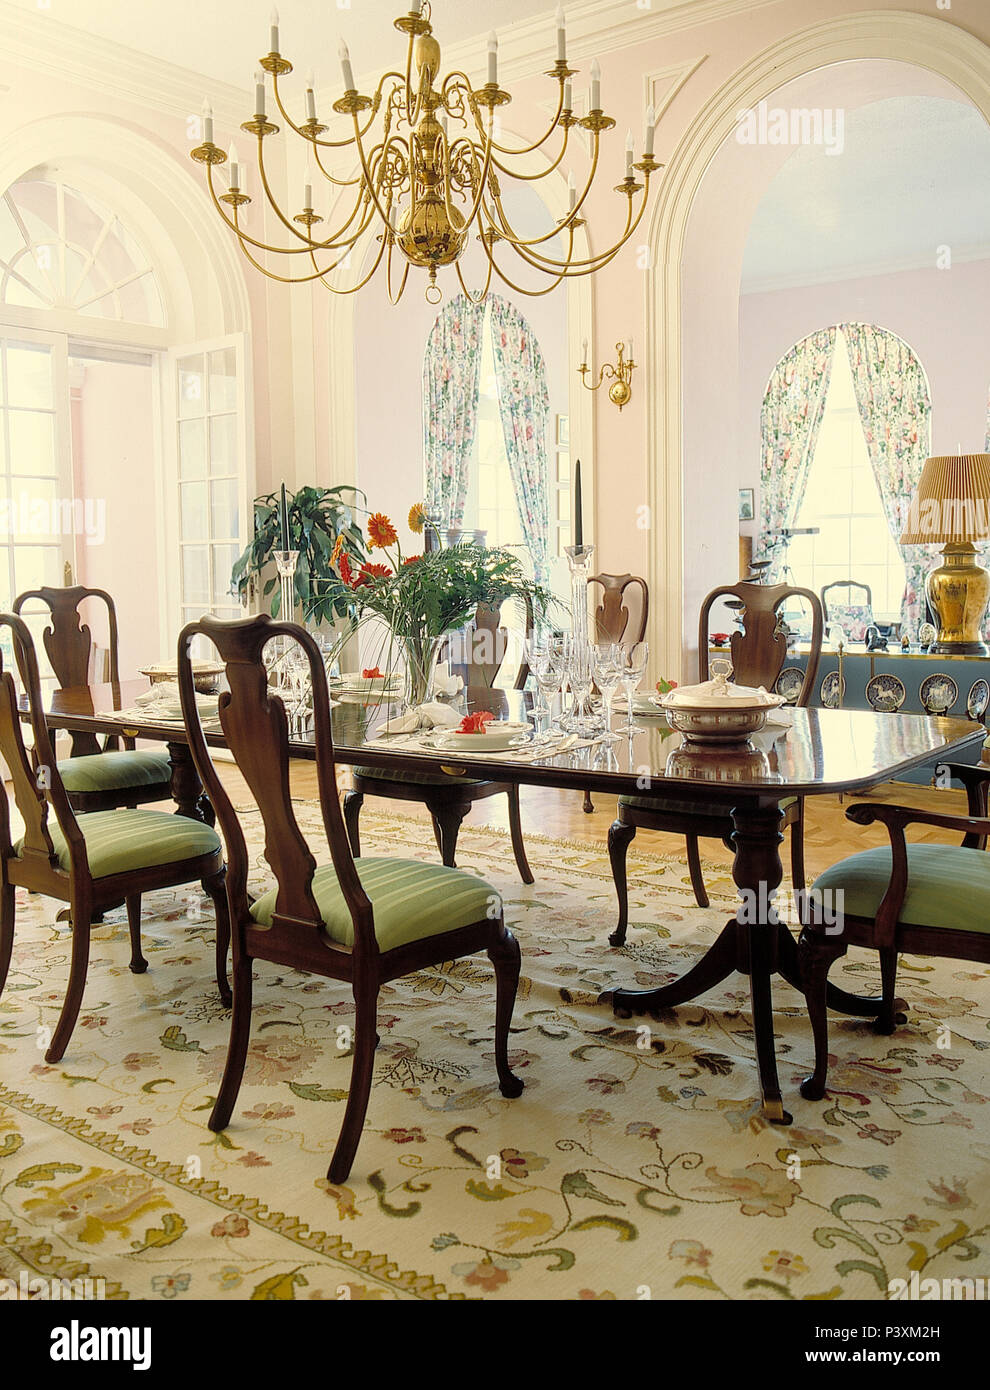 Chandelier Over Antique Mahogany Dining Table And Chairs In Opulent Dining Room With Pale Patterned Rug Stock Photo Alamy